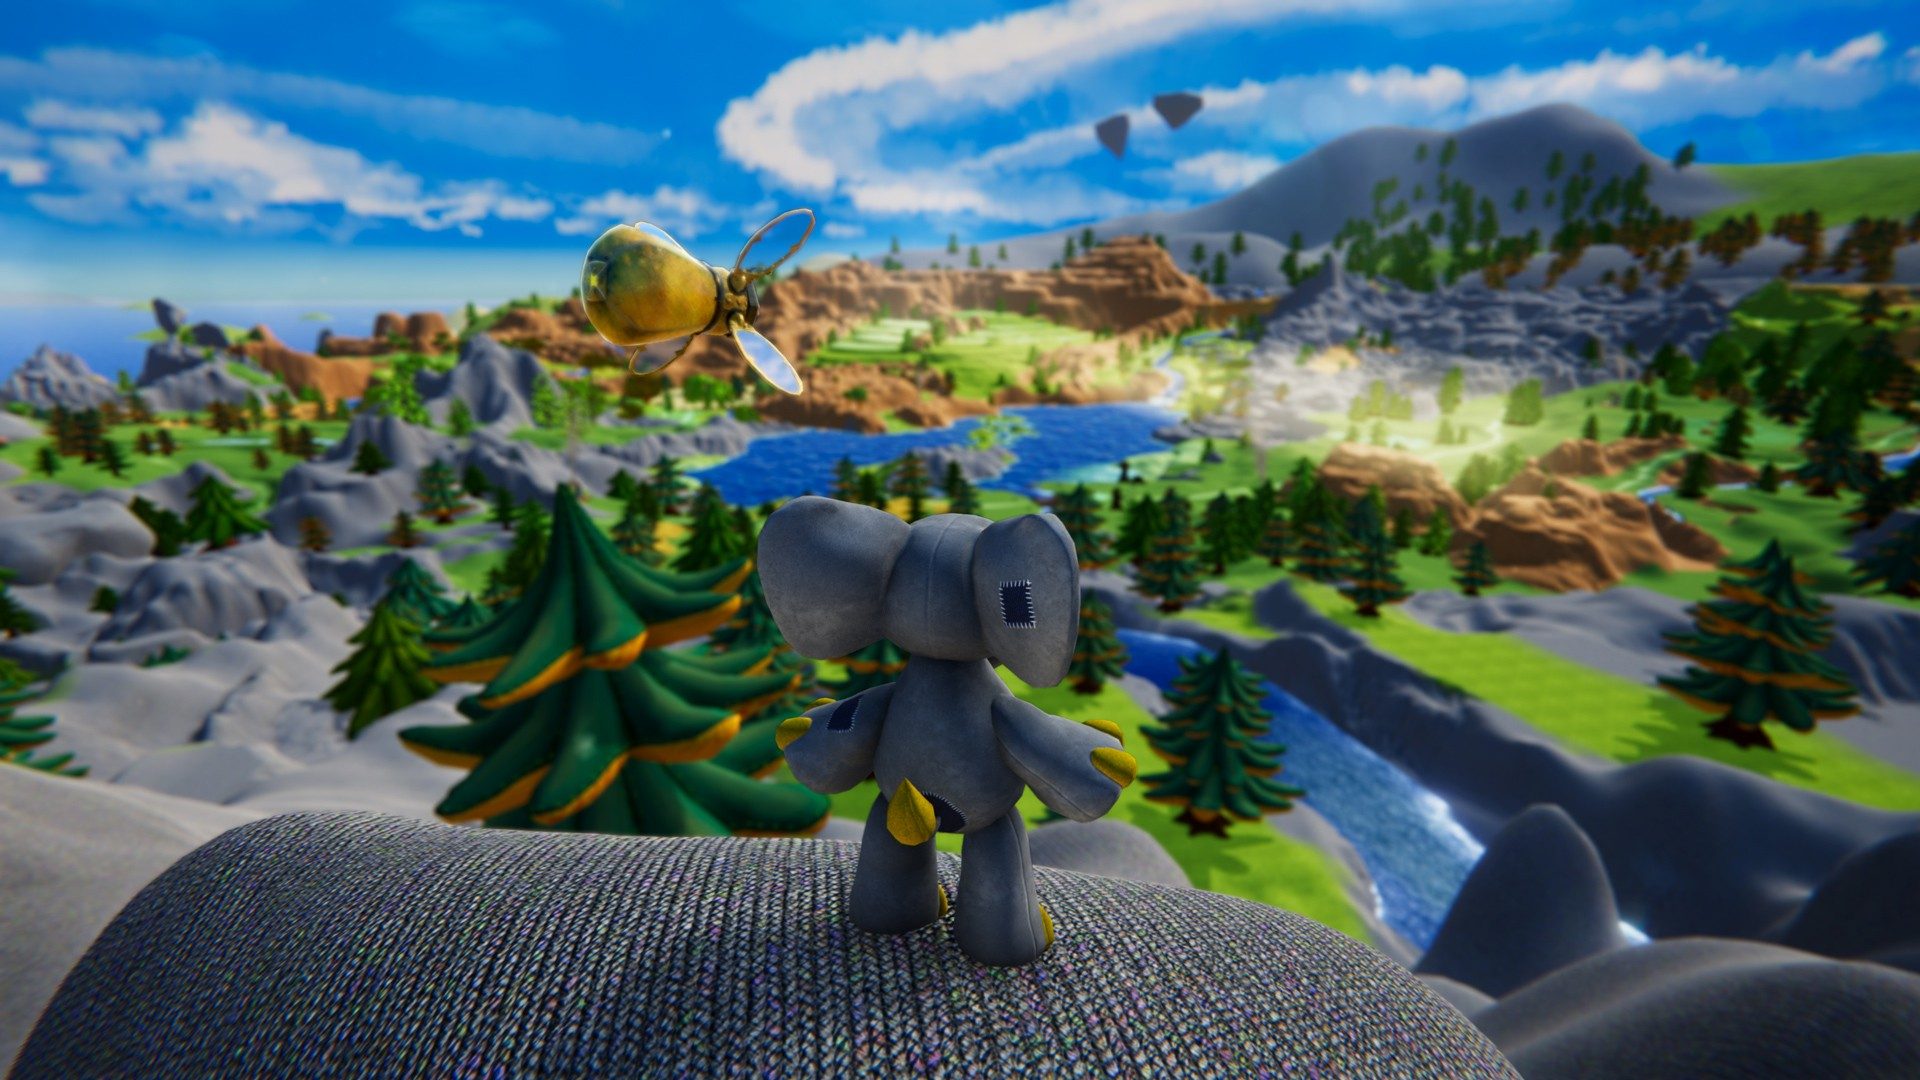 3D, Action, adventure, Alterego Games, casual, Cute, indie, Nintendo Switch Review, Platformer, Rating 7/10, Singleplayer, StickyLock Studios, Switch Review, Woven, Woven Review